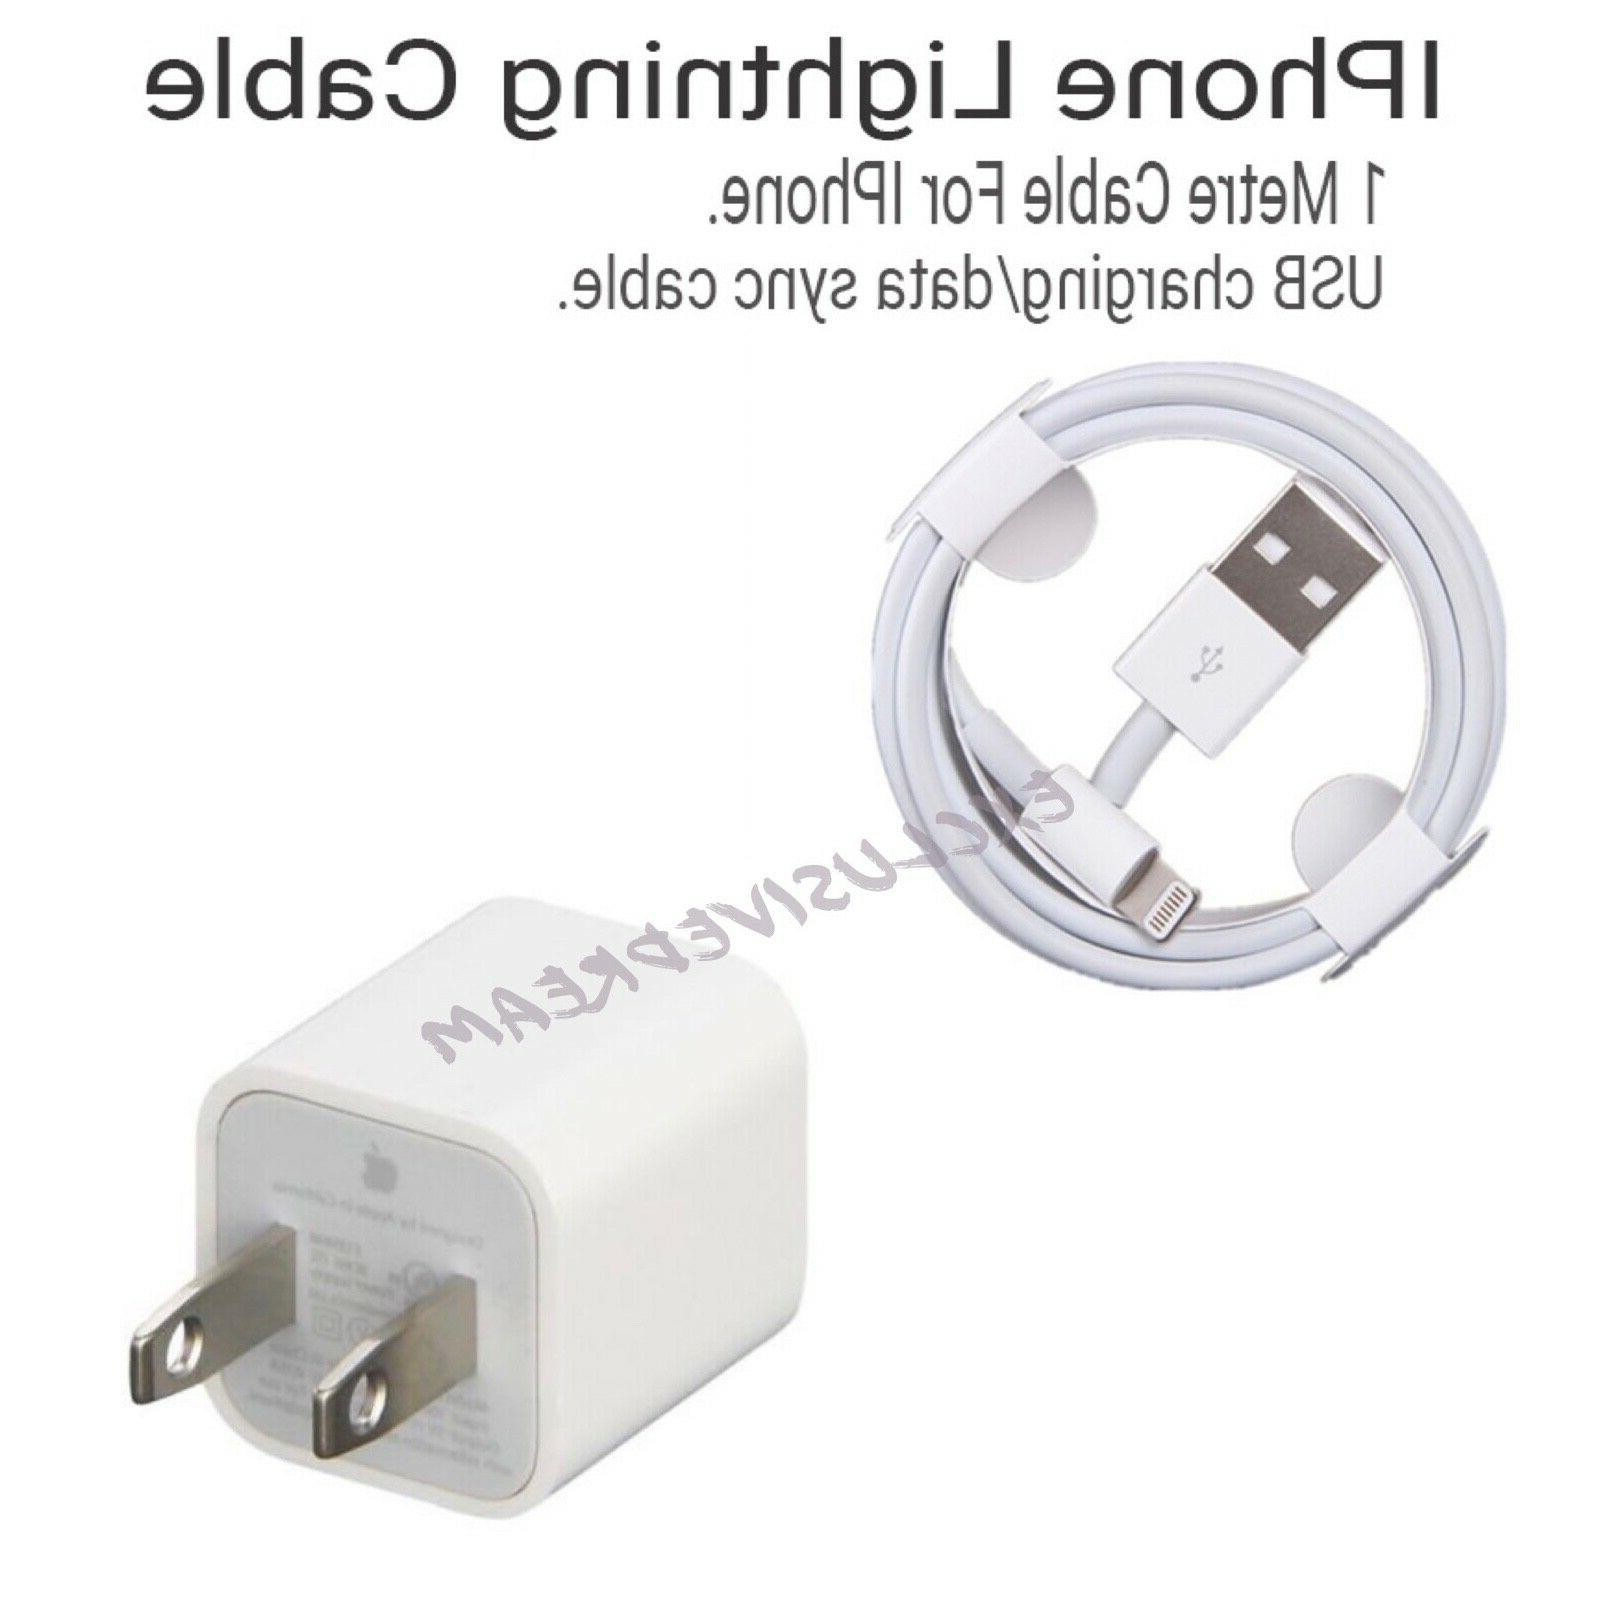 Genuine OEM Apple Lightning USB Charger Cable Cord iPhone 6 8